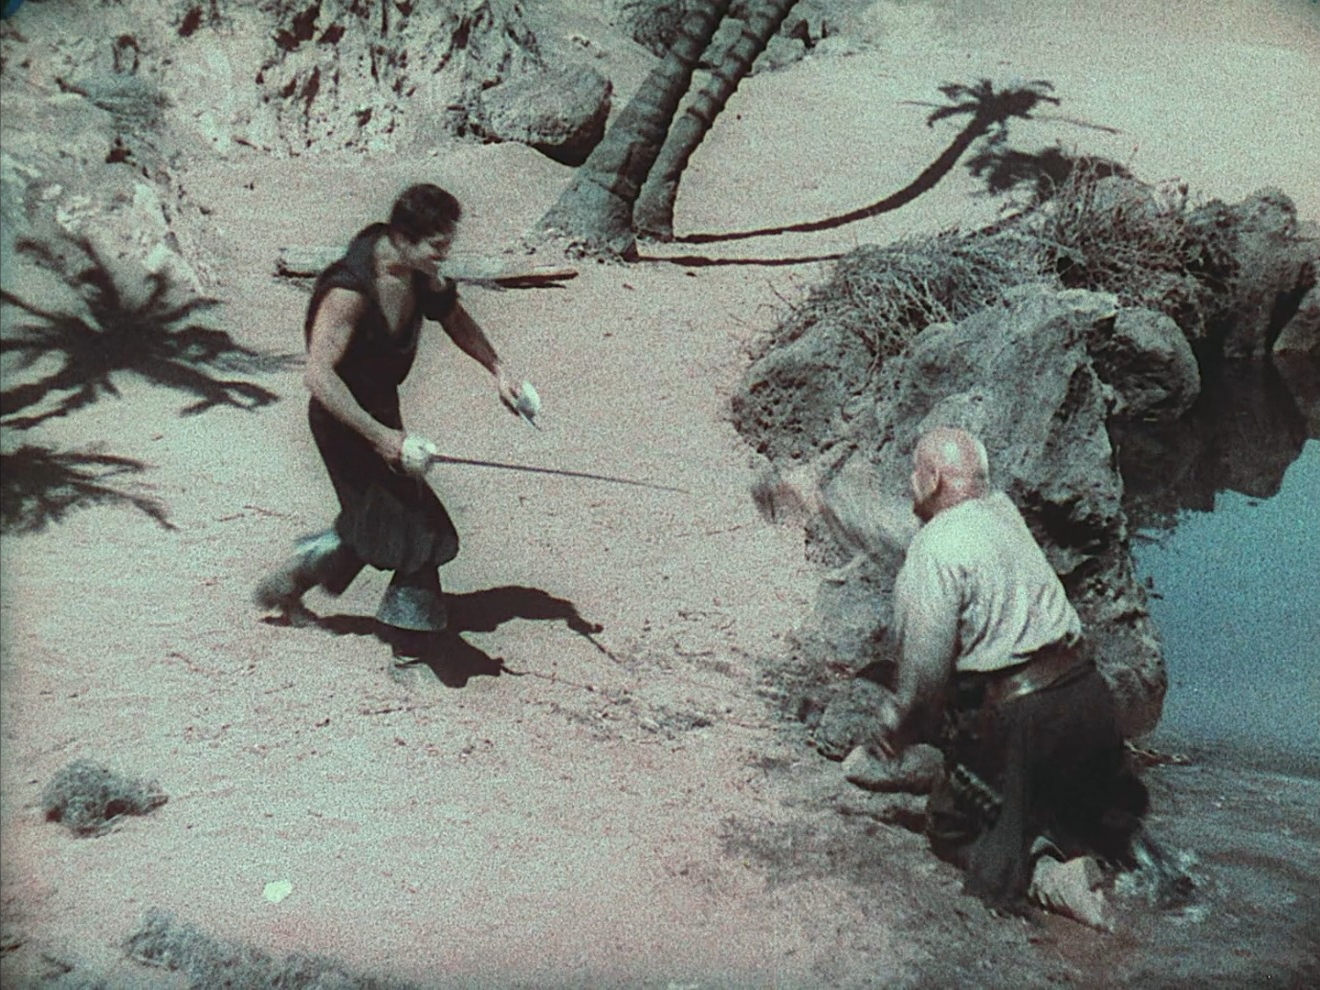 The Duel on the Beach, Part III: In Film!